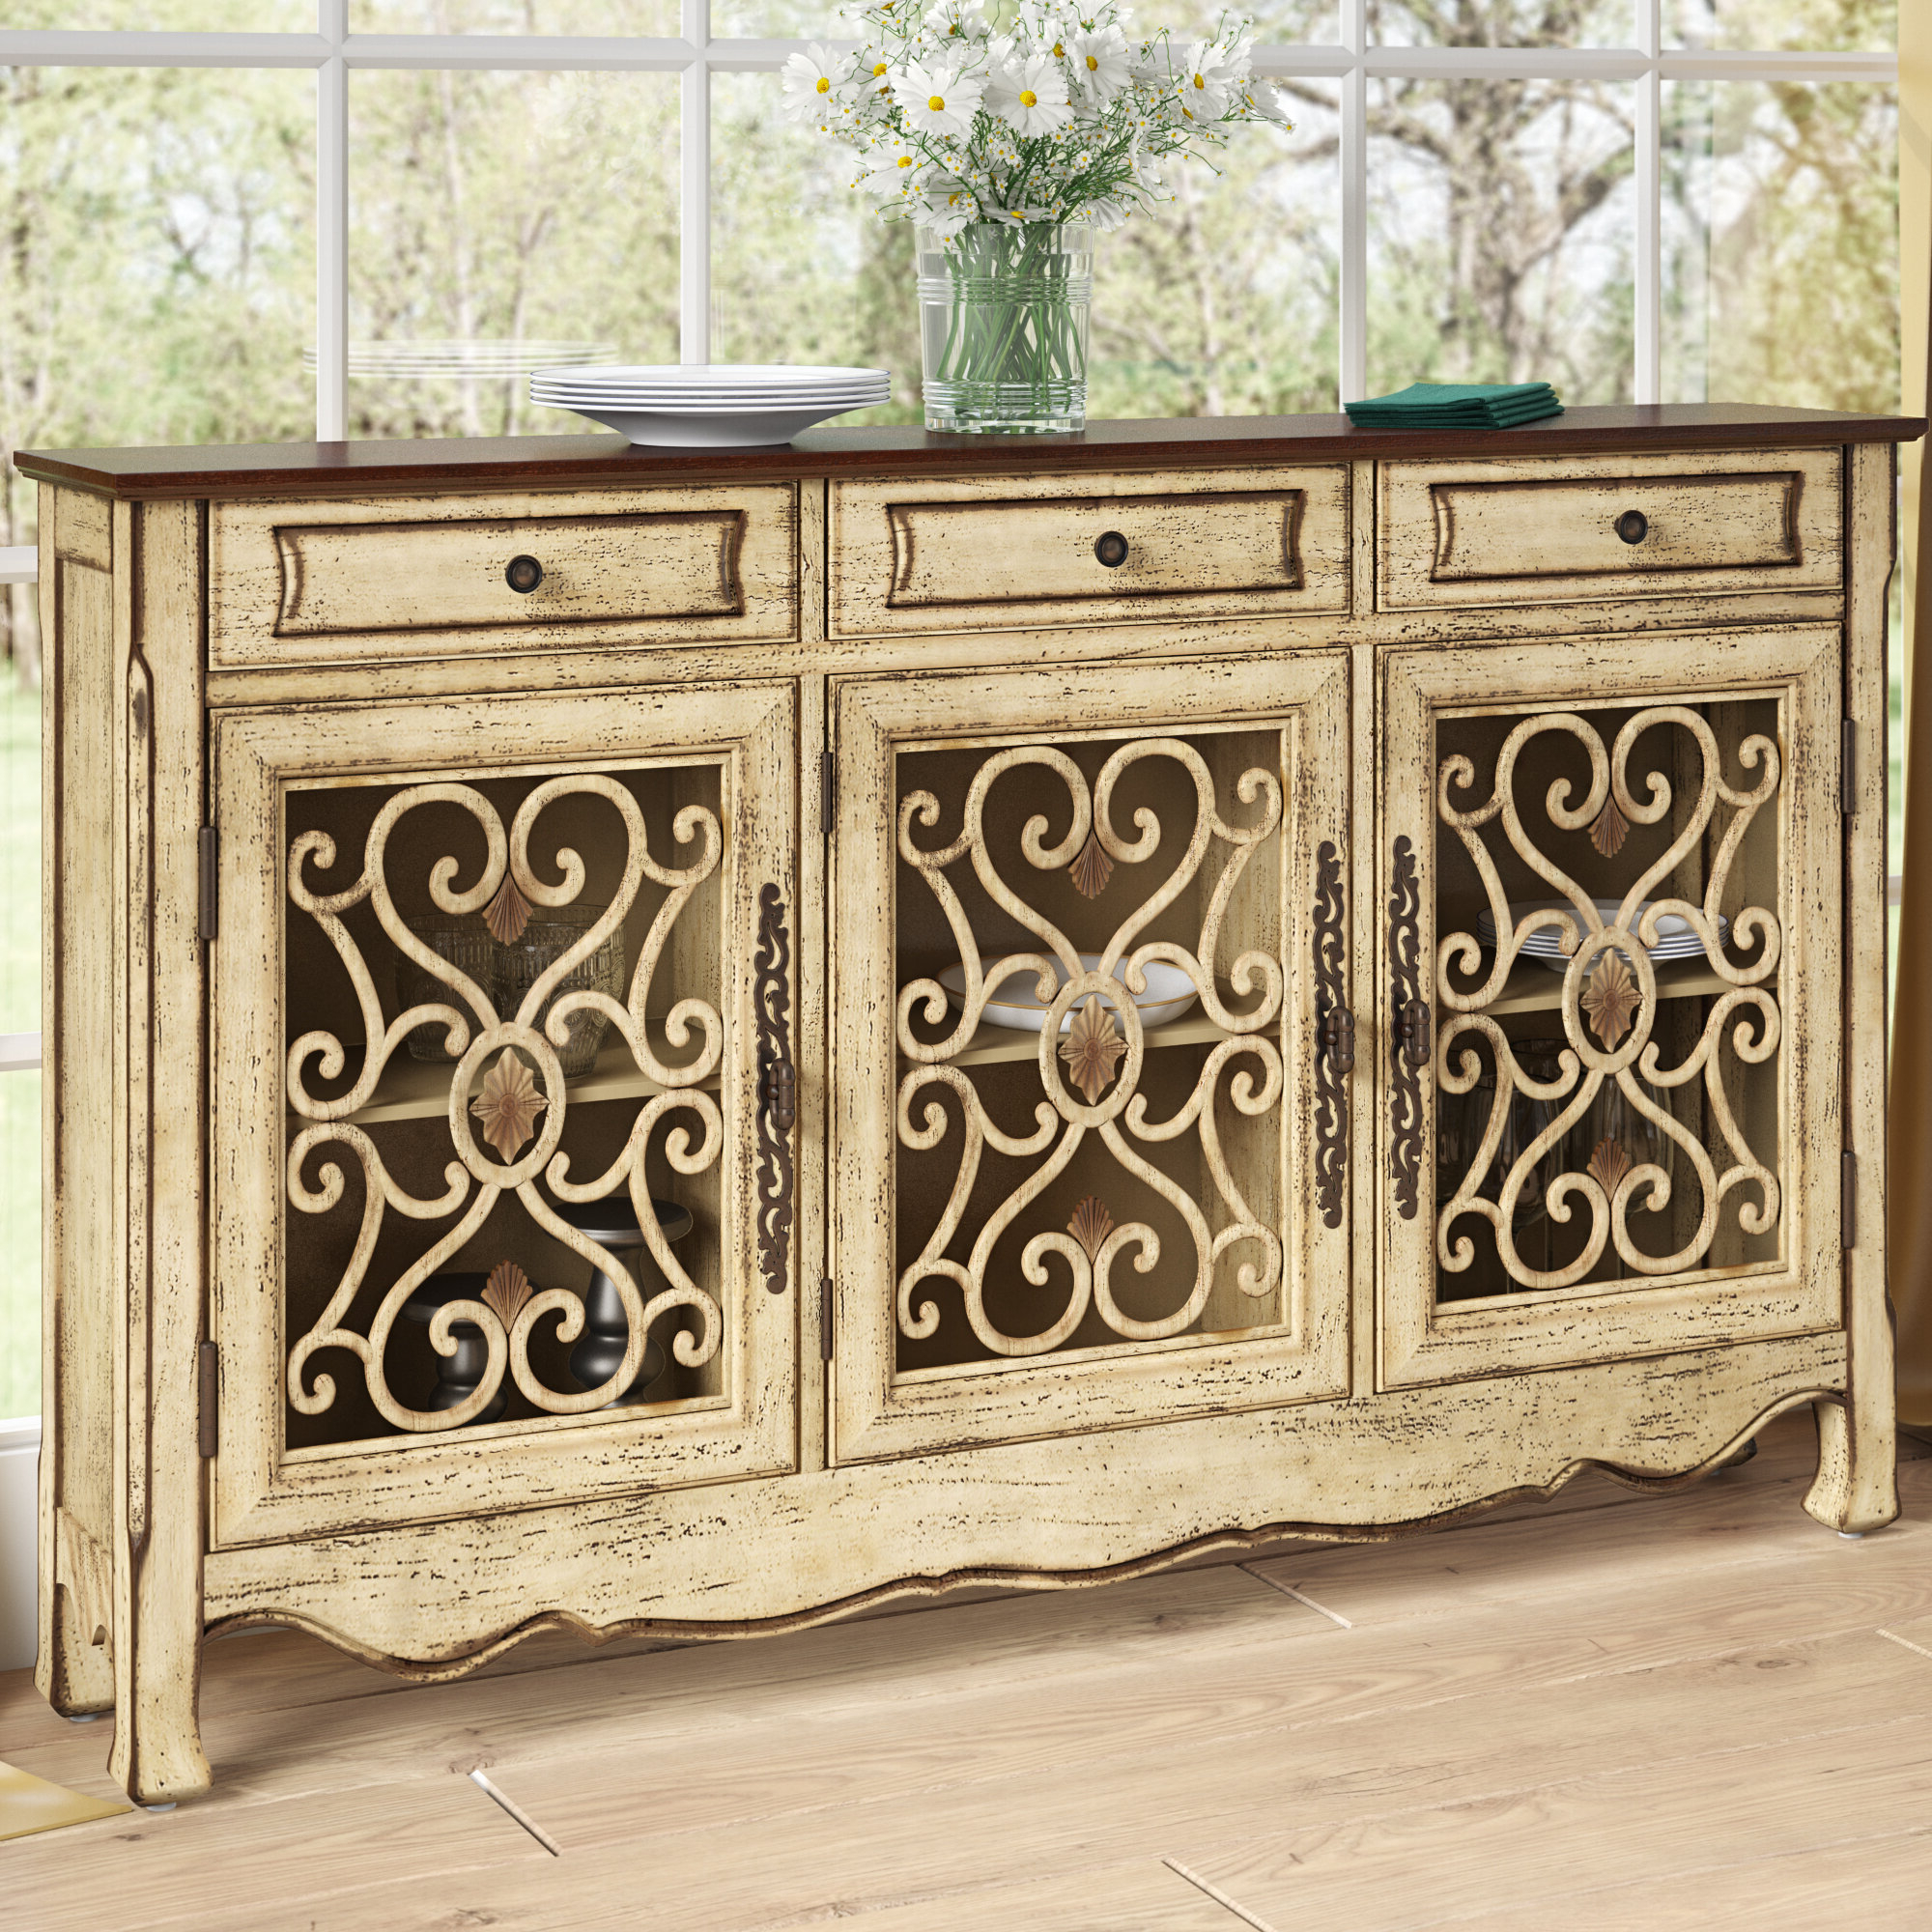 Antique Green Sideboard | Wayfair Inside Knoxville Sideboards (View 2 of 20)